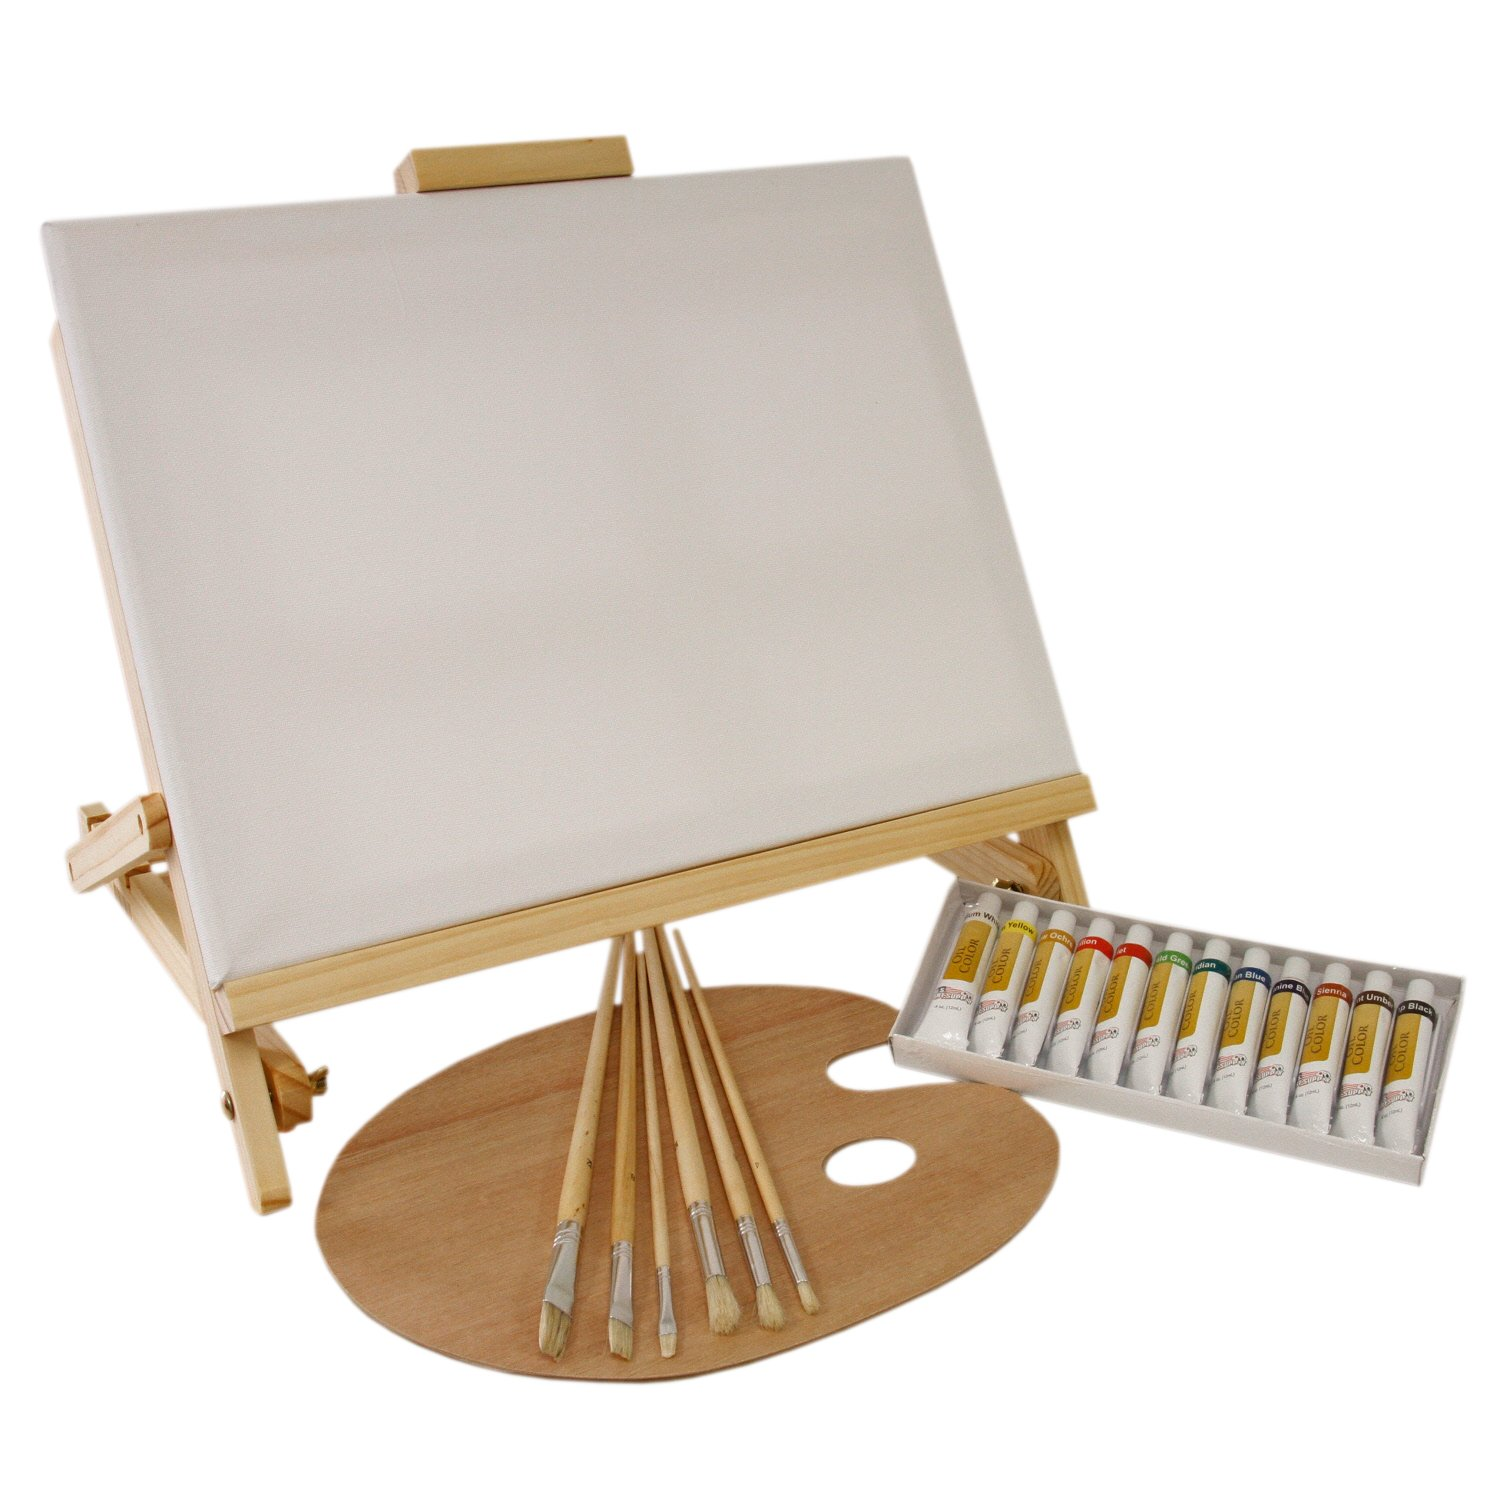 US Art Supply 21-Piece Oil Painting Set with Table Easel